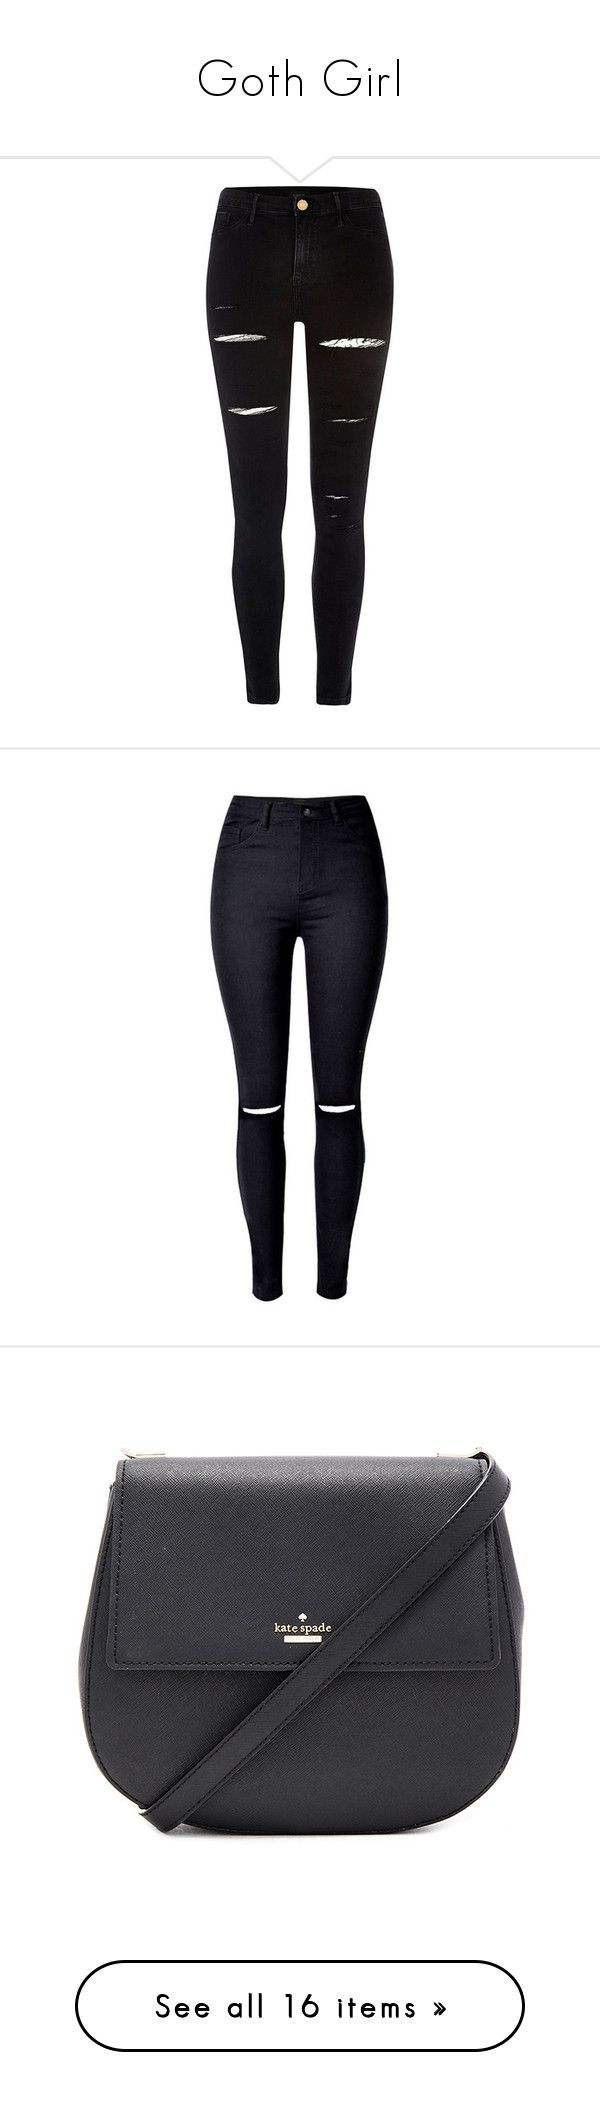 """""""Goth Girl"""" by sapphire96-cclxv ❤ liked on Polyvore featuring pants, jeans, bottoms, calças, black, jeggings, women, tall pants, denim jeggings and distressed denim pants"""